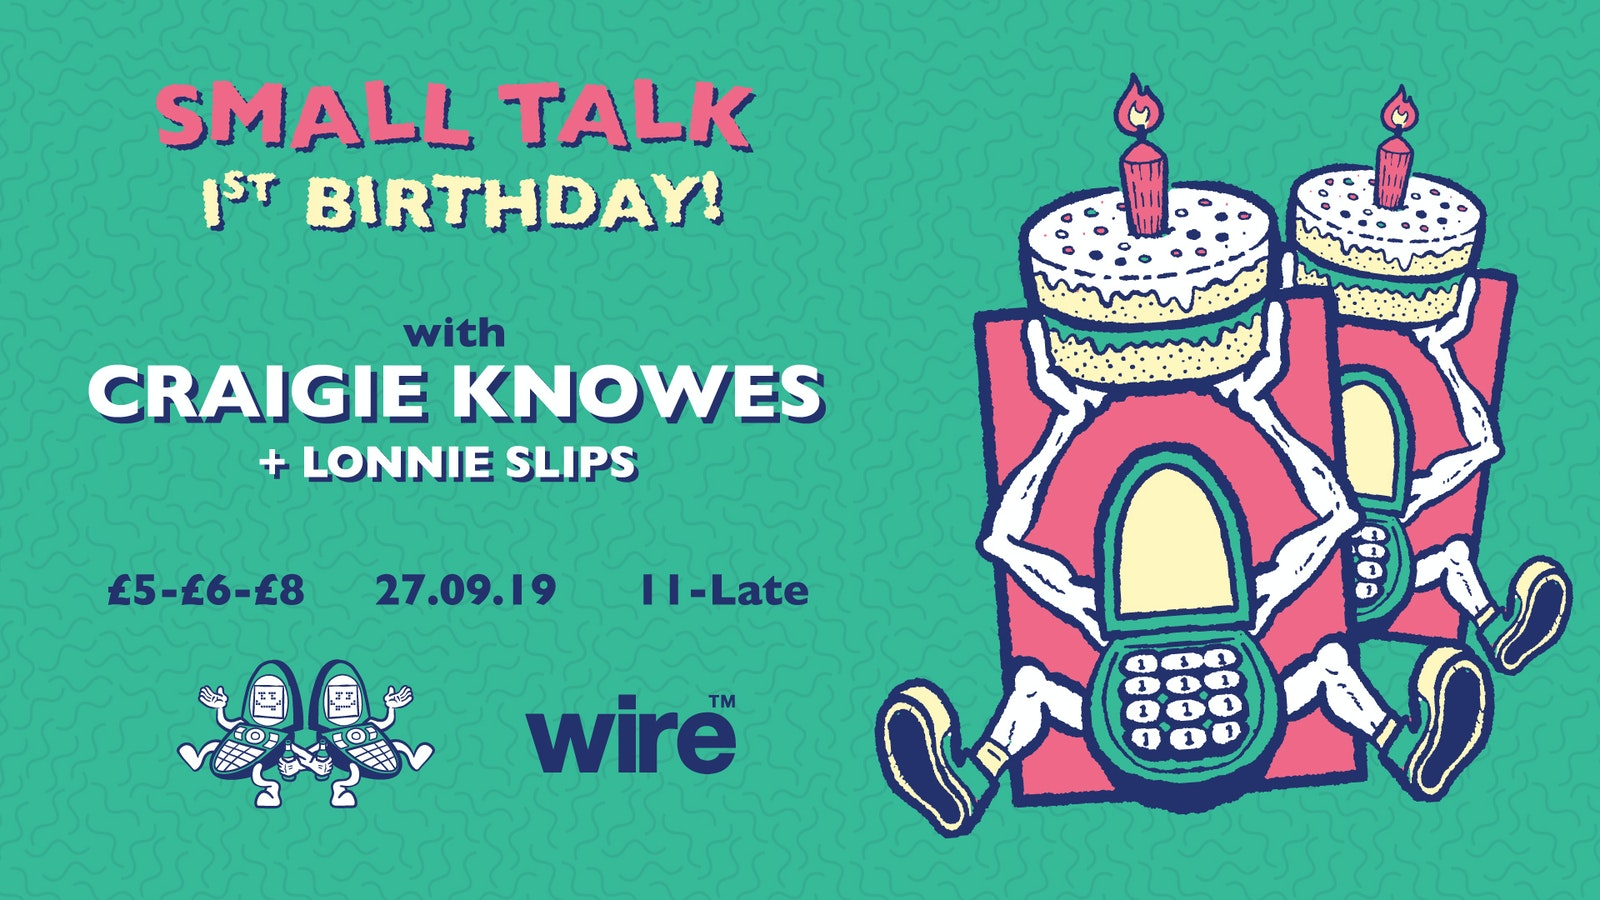 Small Talk 1st Birthday: Craigie Knowes